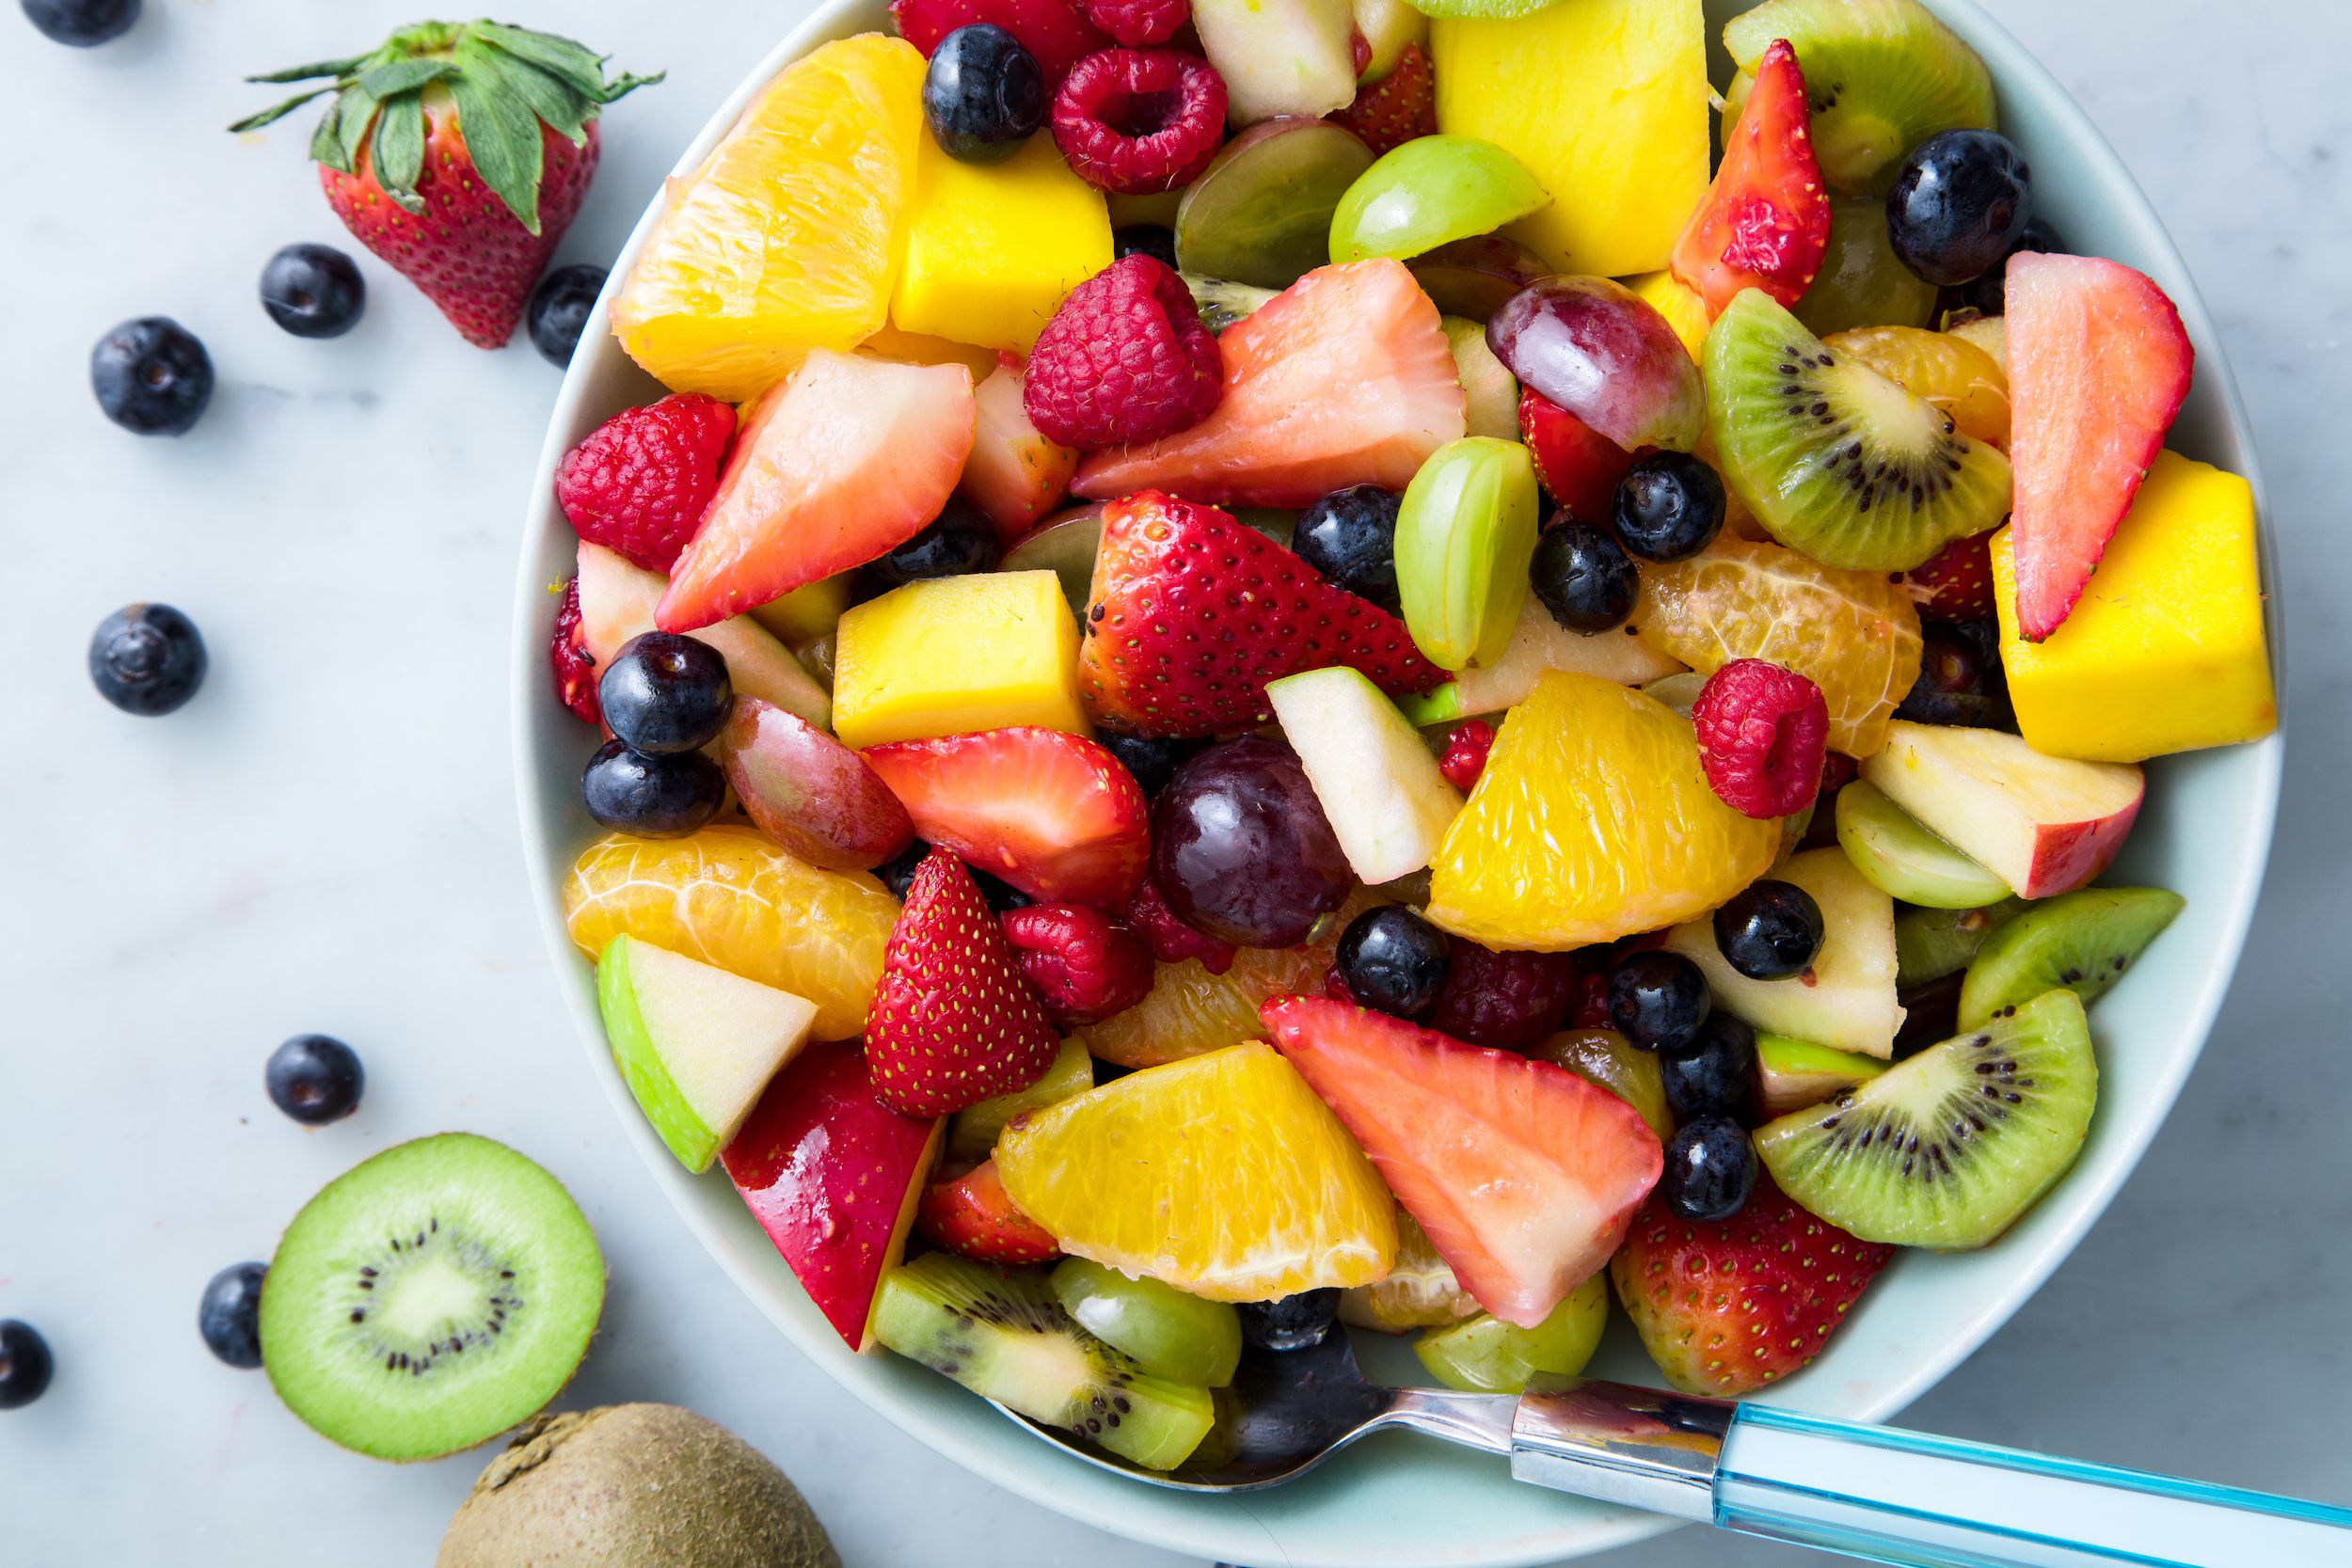 Easy to get Natural Fruits that can keep you hydrated